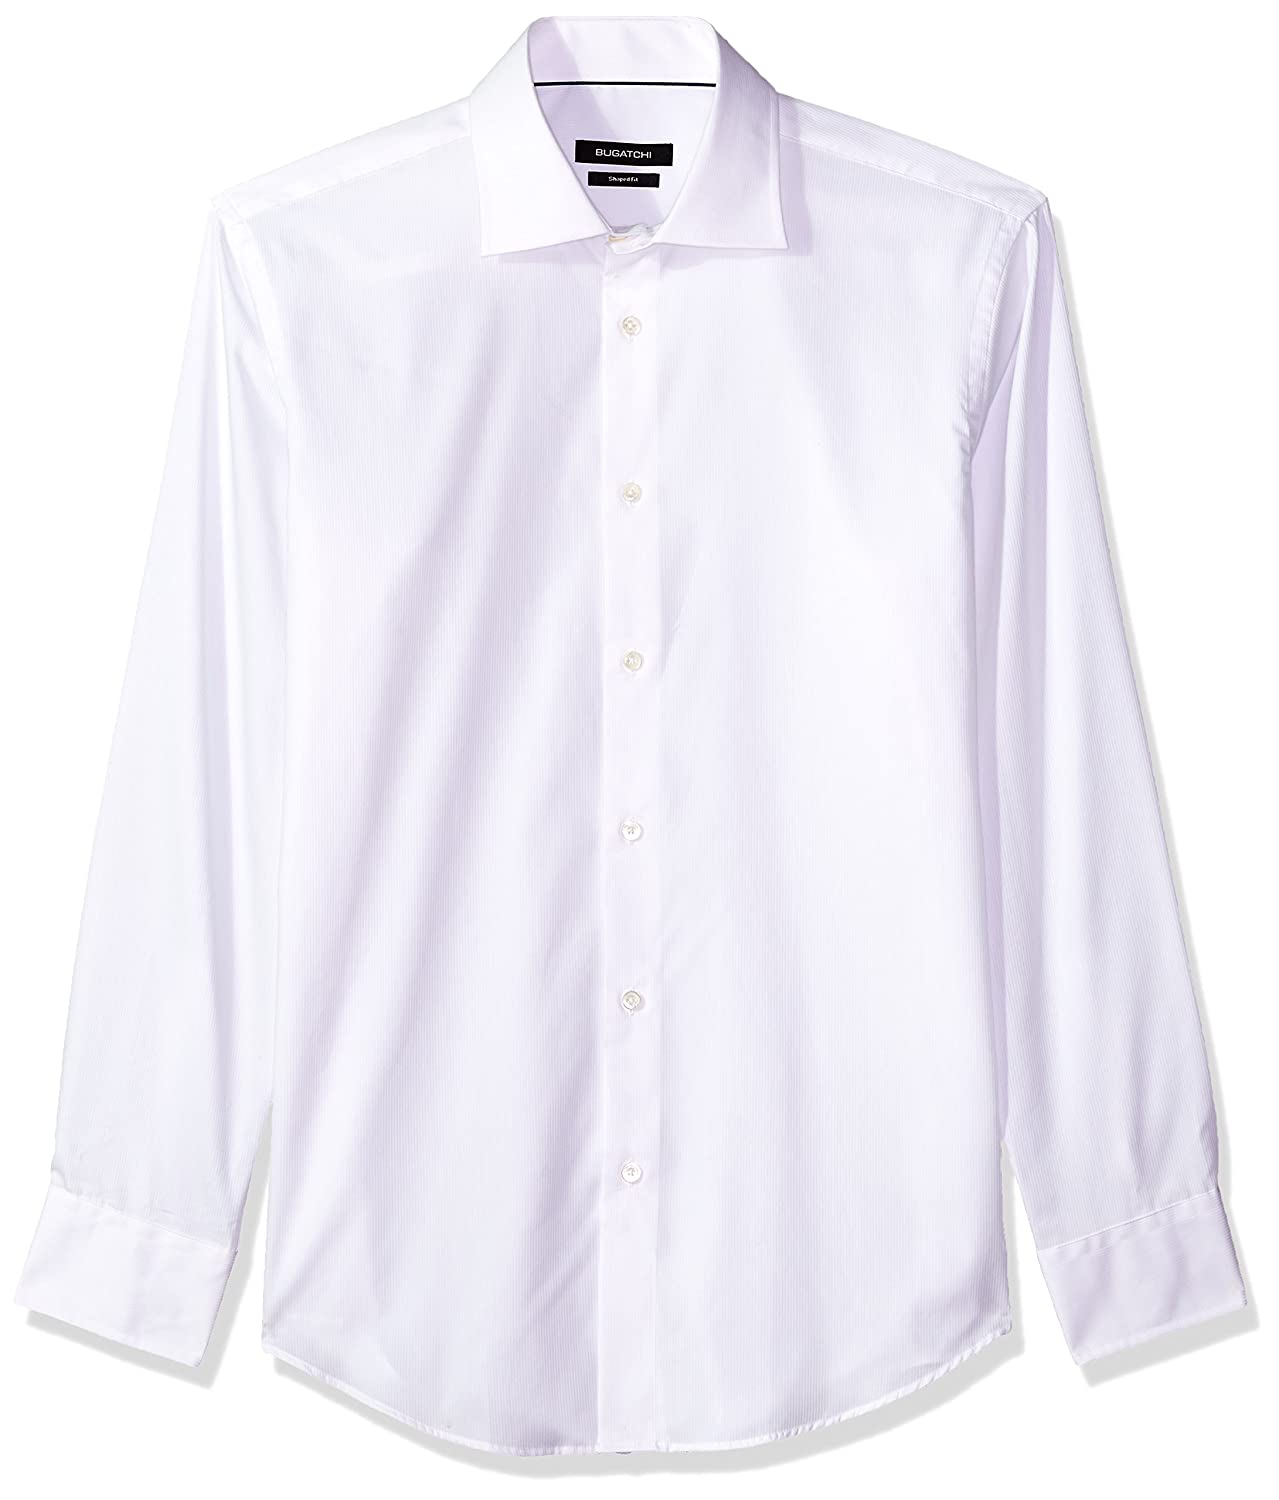 Bugatchi Mens Tailored Fit Soft Finished Pointed Collar Dress Shirt